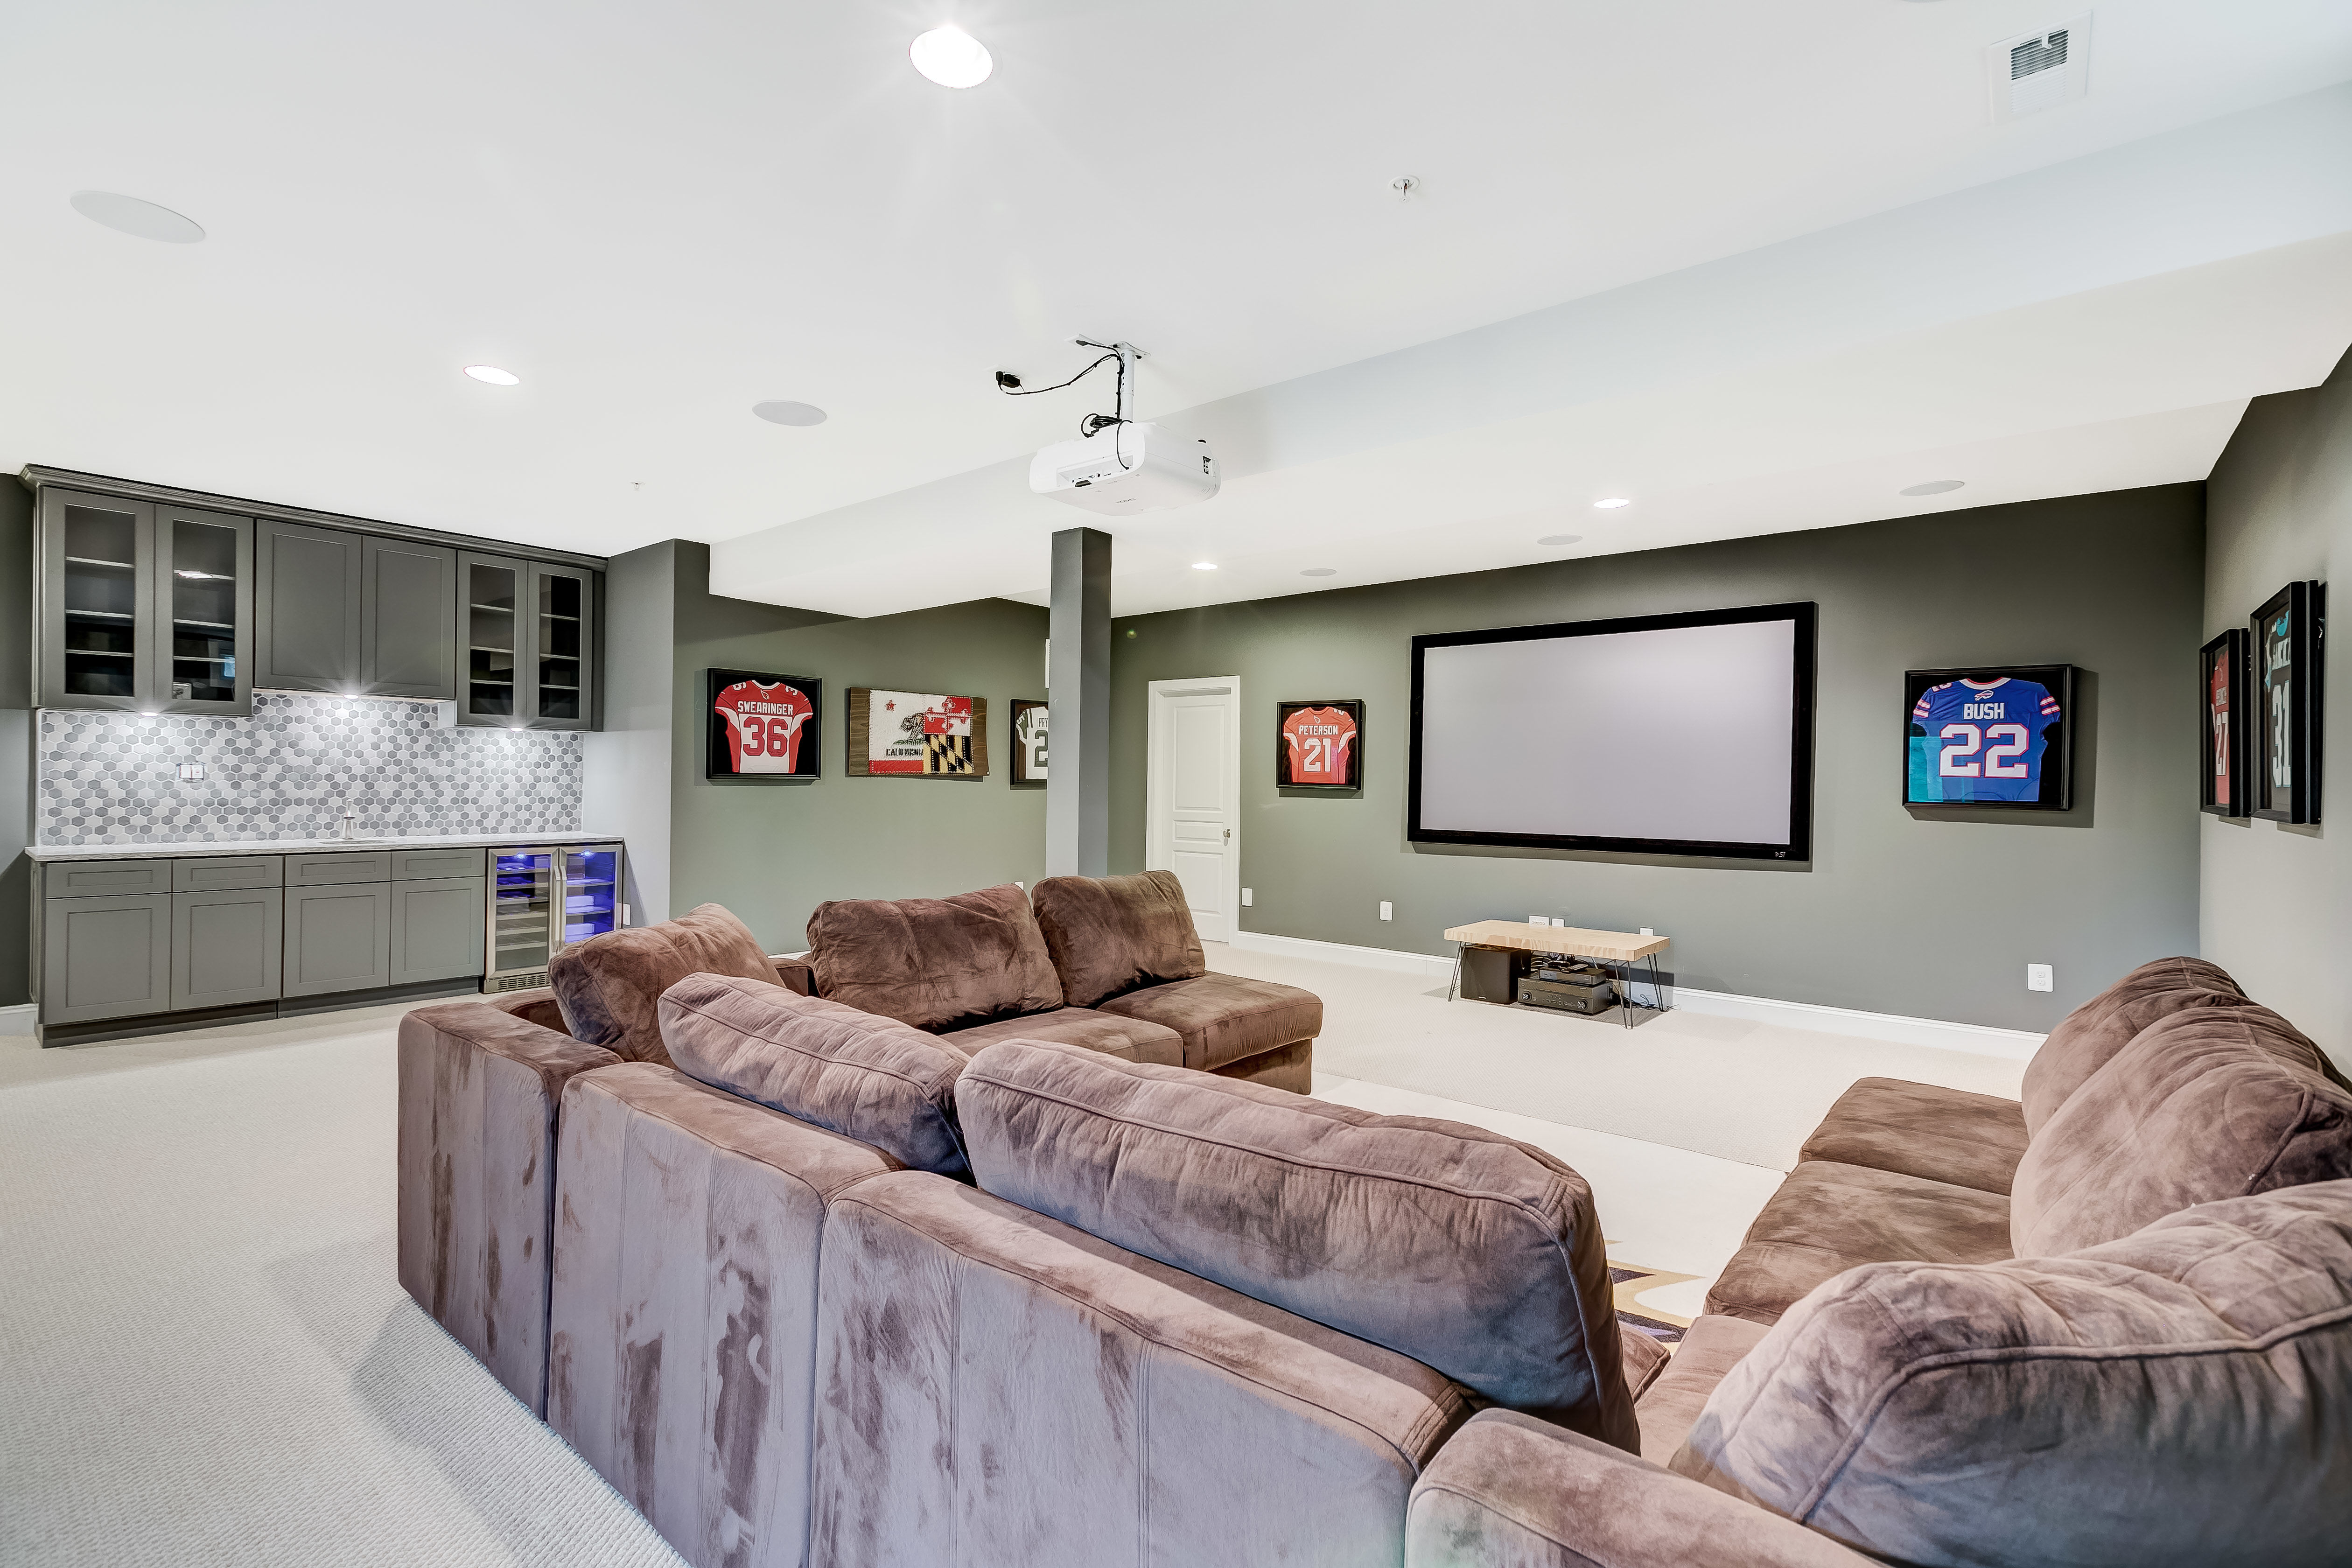 After less than a year, Baltimore Ravens strong safety Tony Jefferson has put his five-bedroom, five-and-a-half-bathroom home on the market for less than $1 million. The brick-front home is nestled at the end of a cul-de-sac in the private Dulaney View neighborhood of Maryland, and was custom-built in 2017. (Image: Courtesy Compass Real Estate)